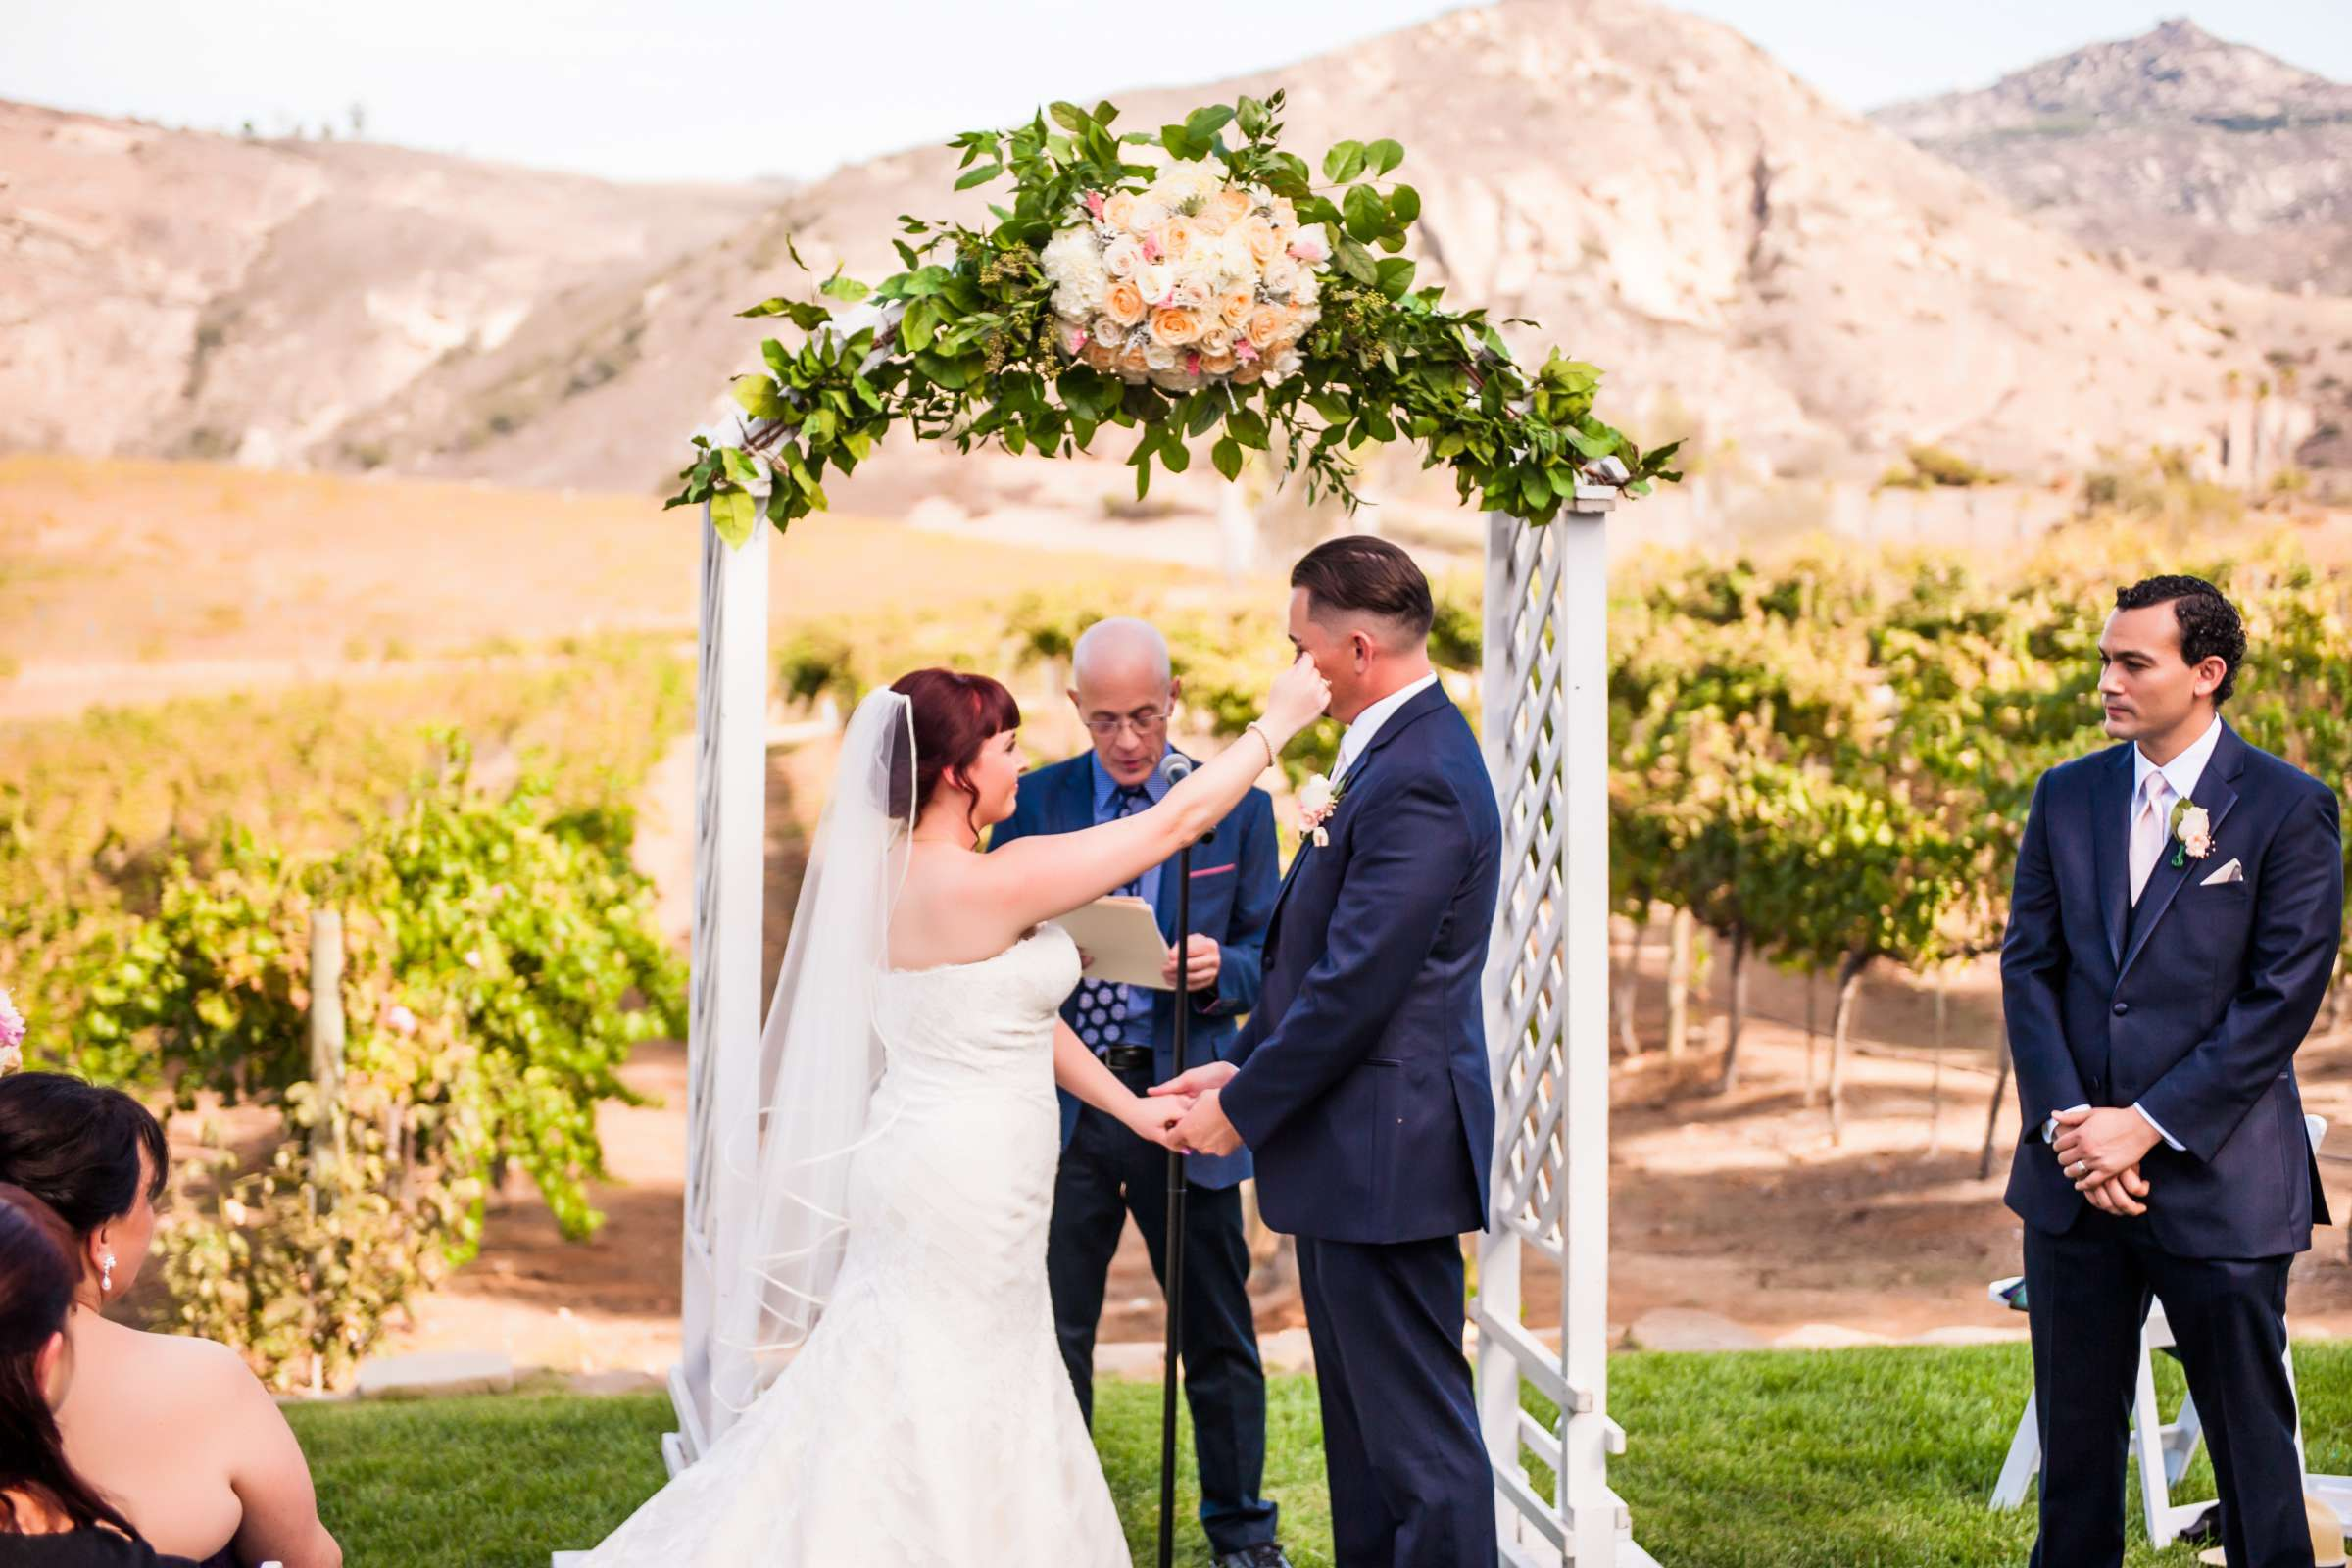 Orfila Vineyards Wedding, Tulasi and Richard Wedding Photo #24 by True Photography